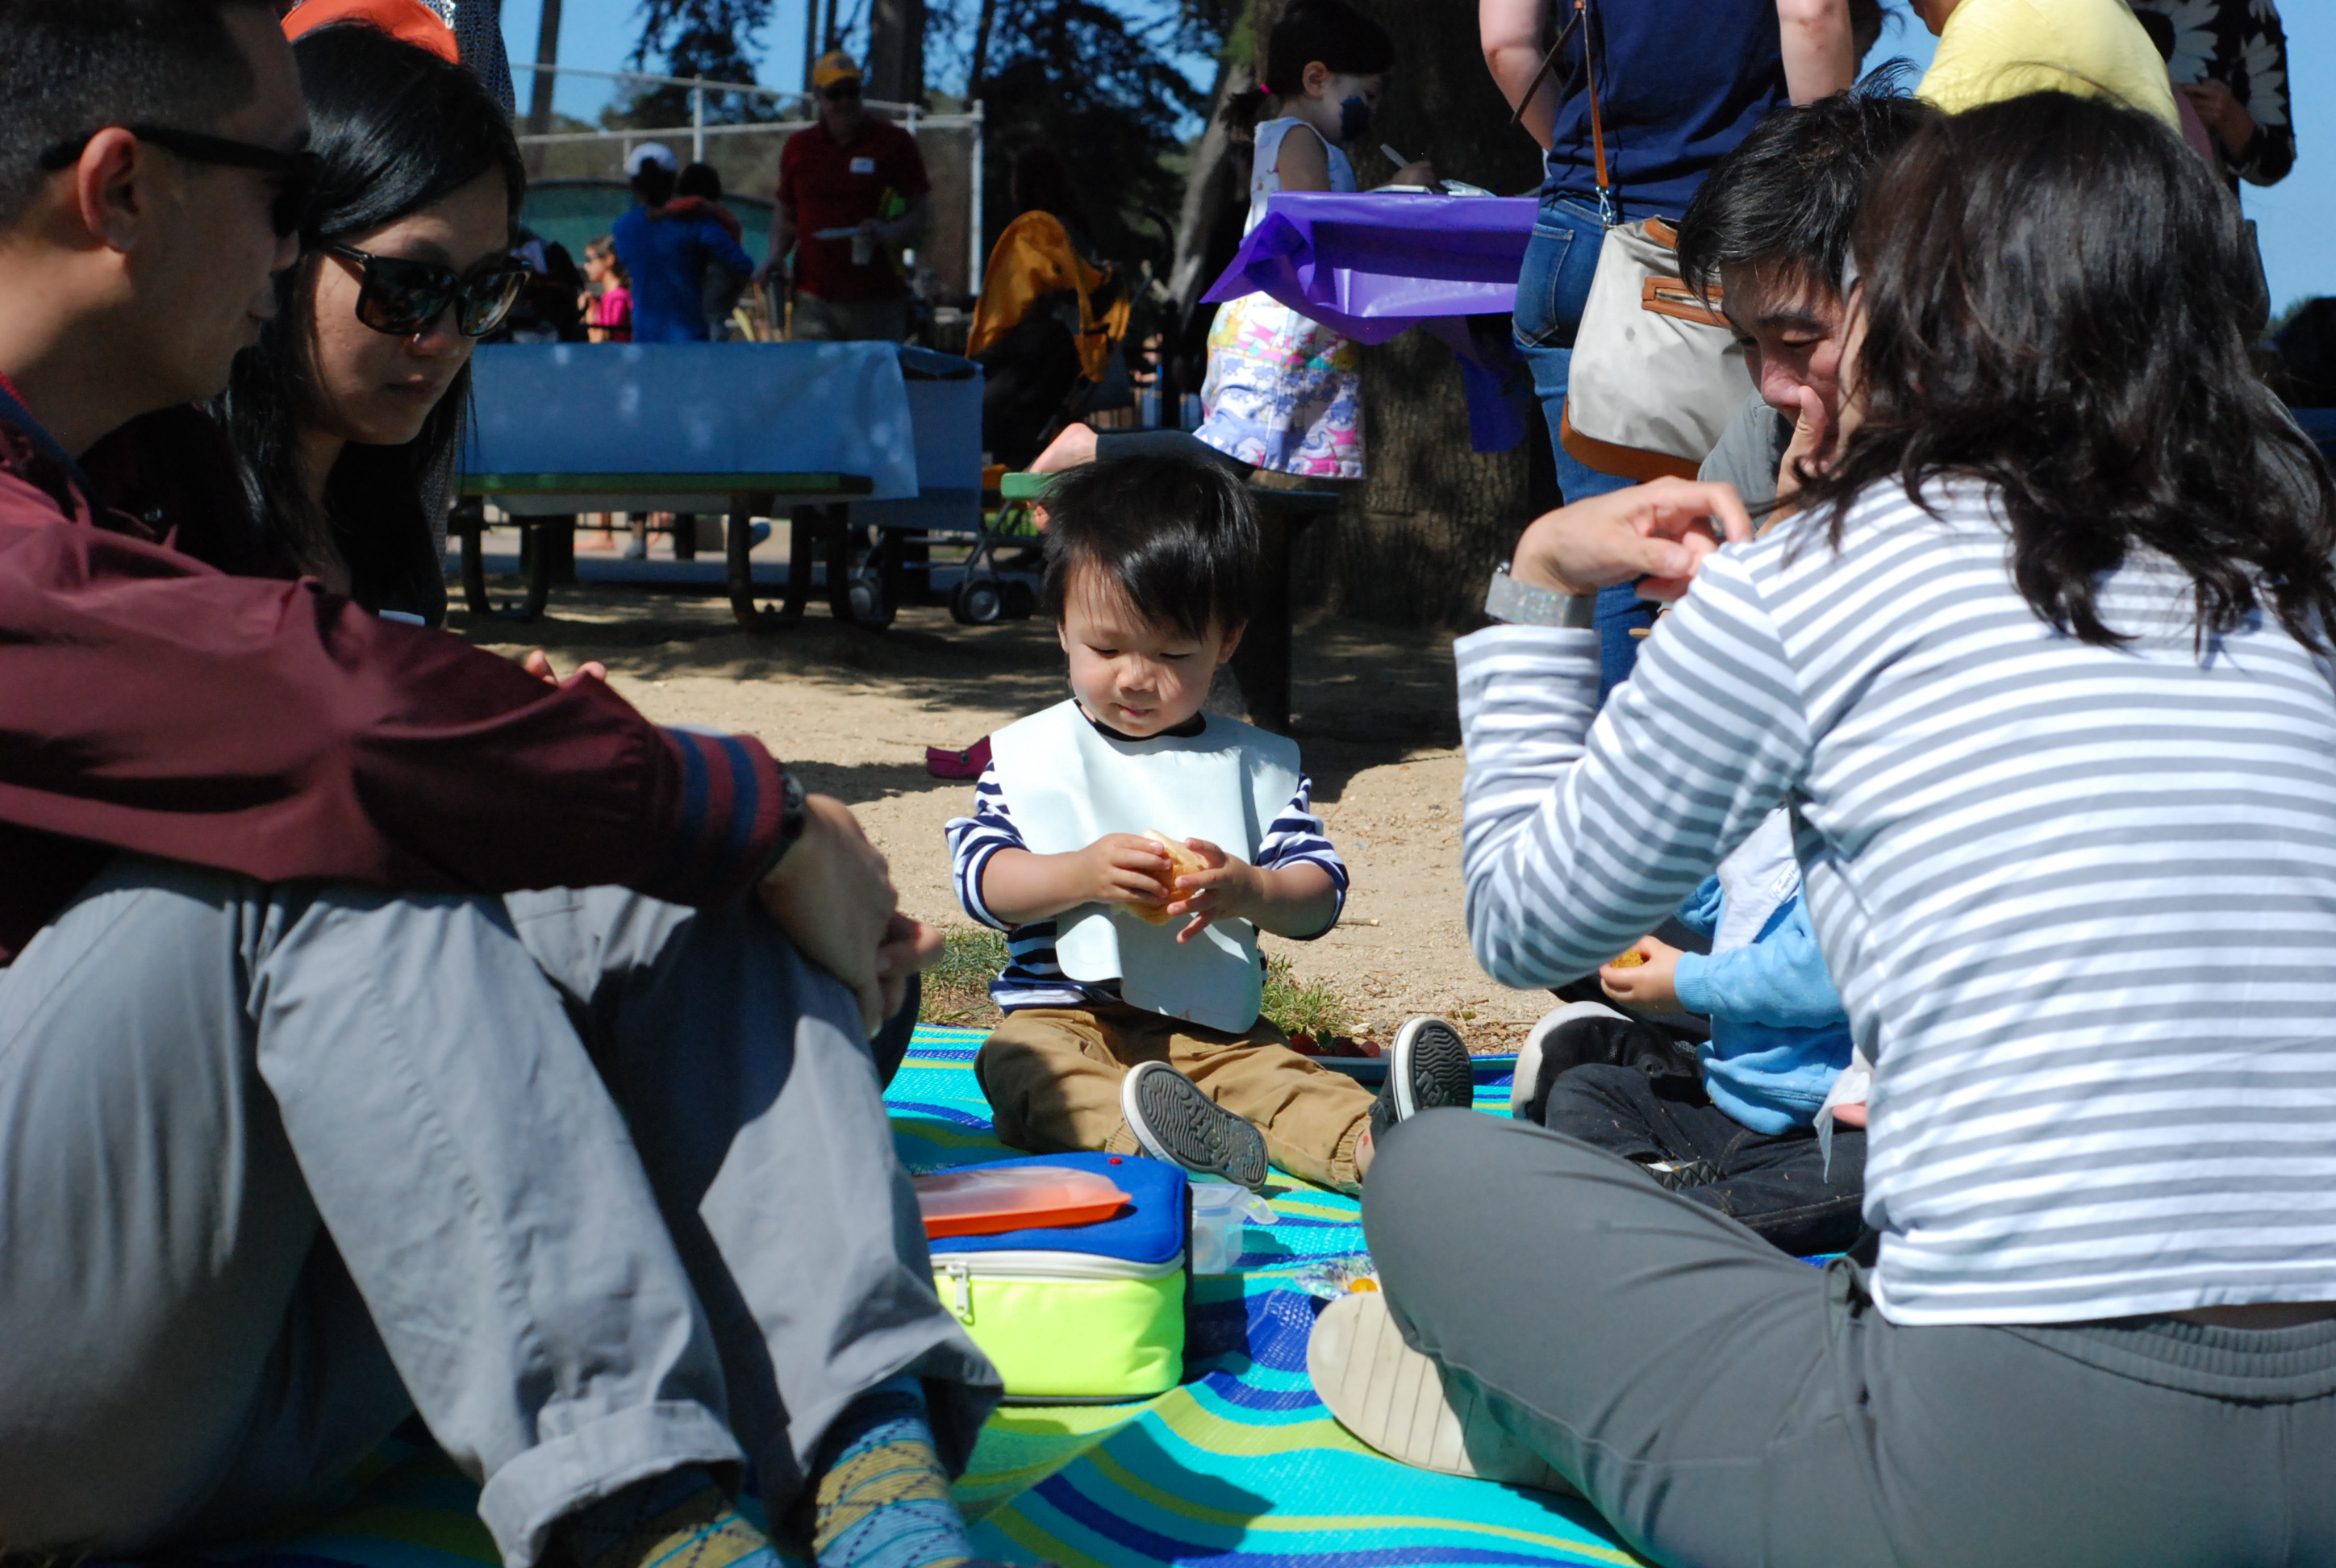 C5 families gather for food, socializing, play, games, and welcoming new families.